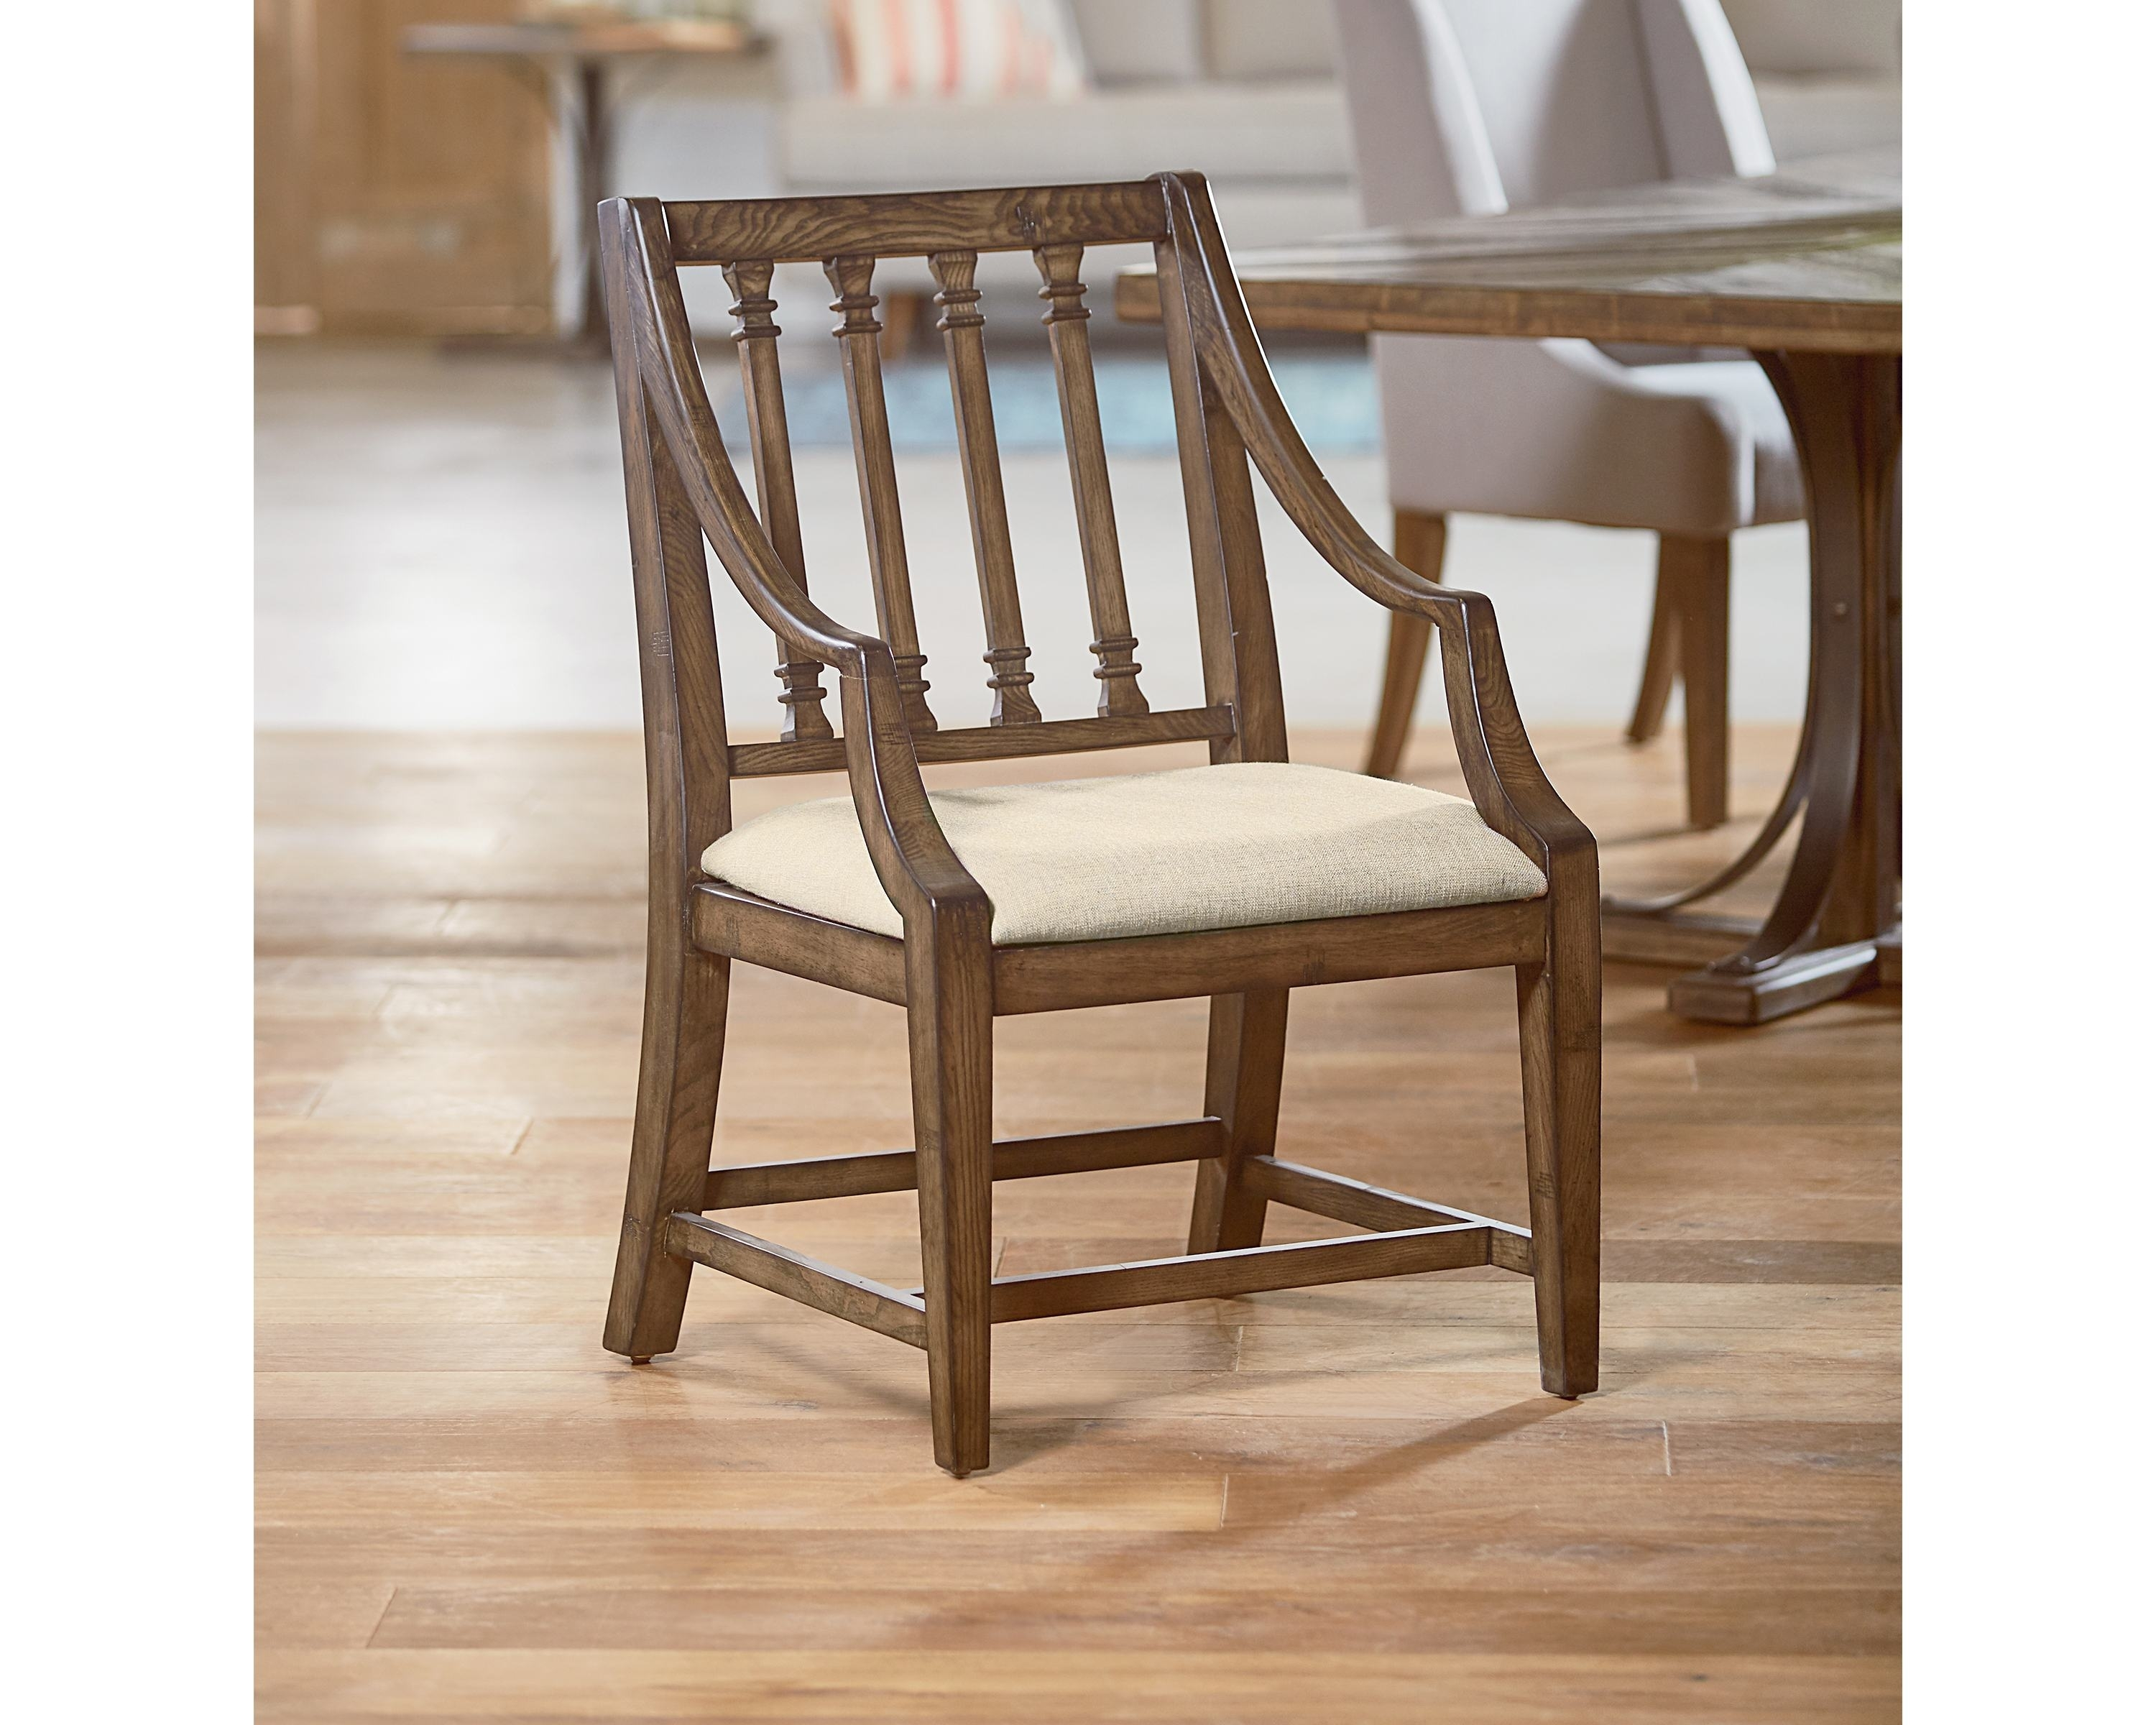 Magnolia Home Revival Arm Chairs Inside Popular Revival Arm Chair – Magnolia Home (#7 of 20)